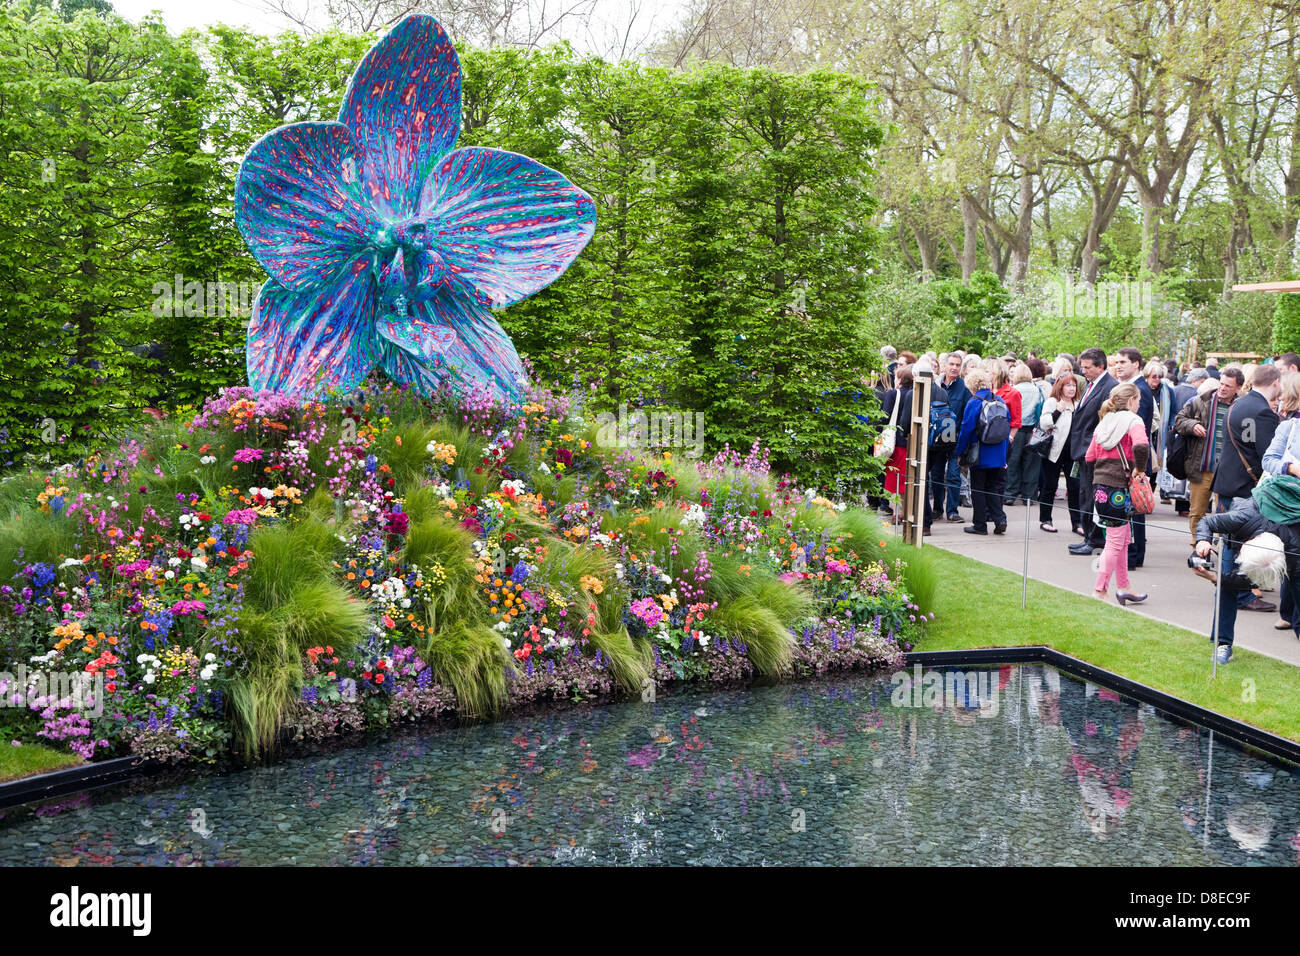 cdeaa2e2650 Centenary Sculpture by Marc Quinn At The Chelsea Flower Show 2013 London UK  - Stock Image